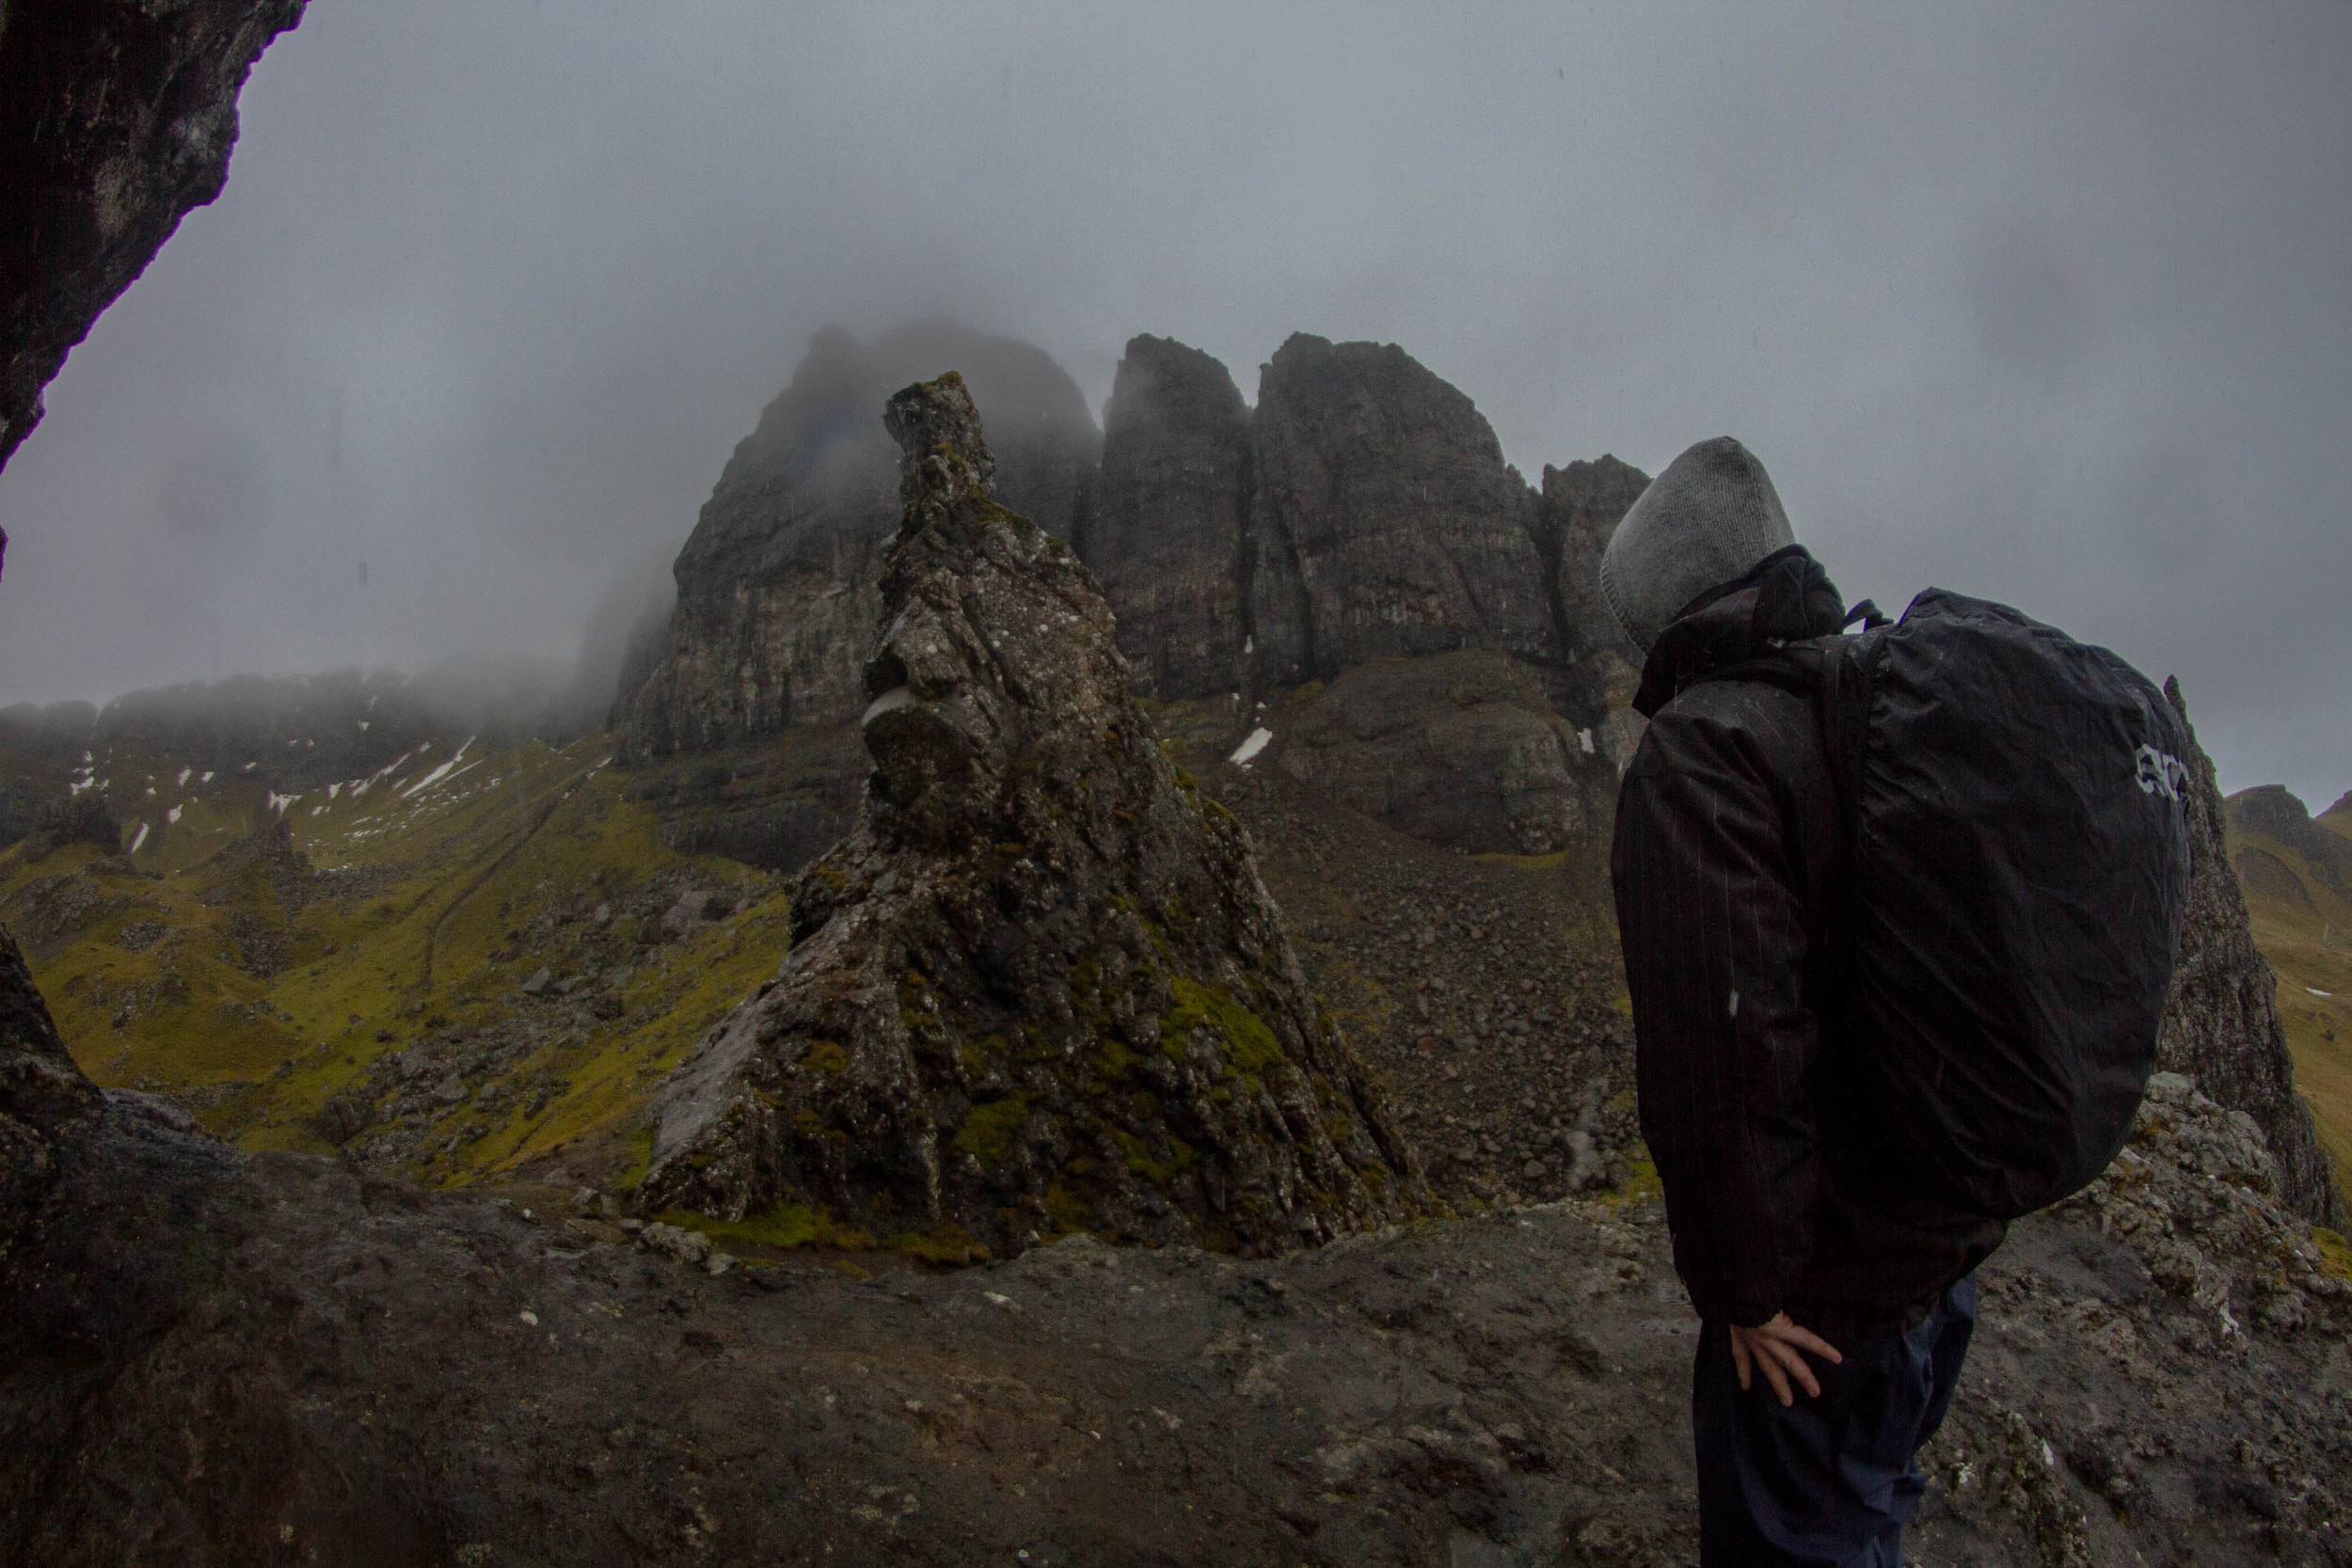 Looking up at the Old Man of Storr as you hike is impressive but once you see beyond that you are met by massive cliffs.